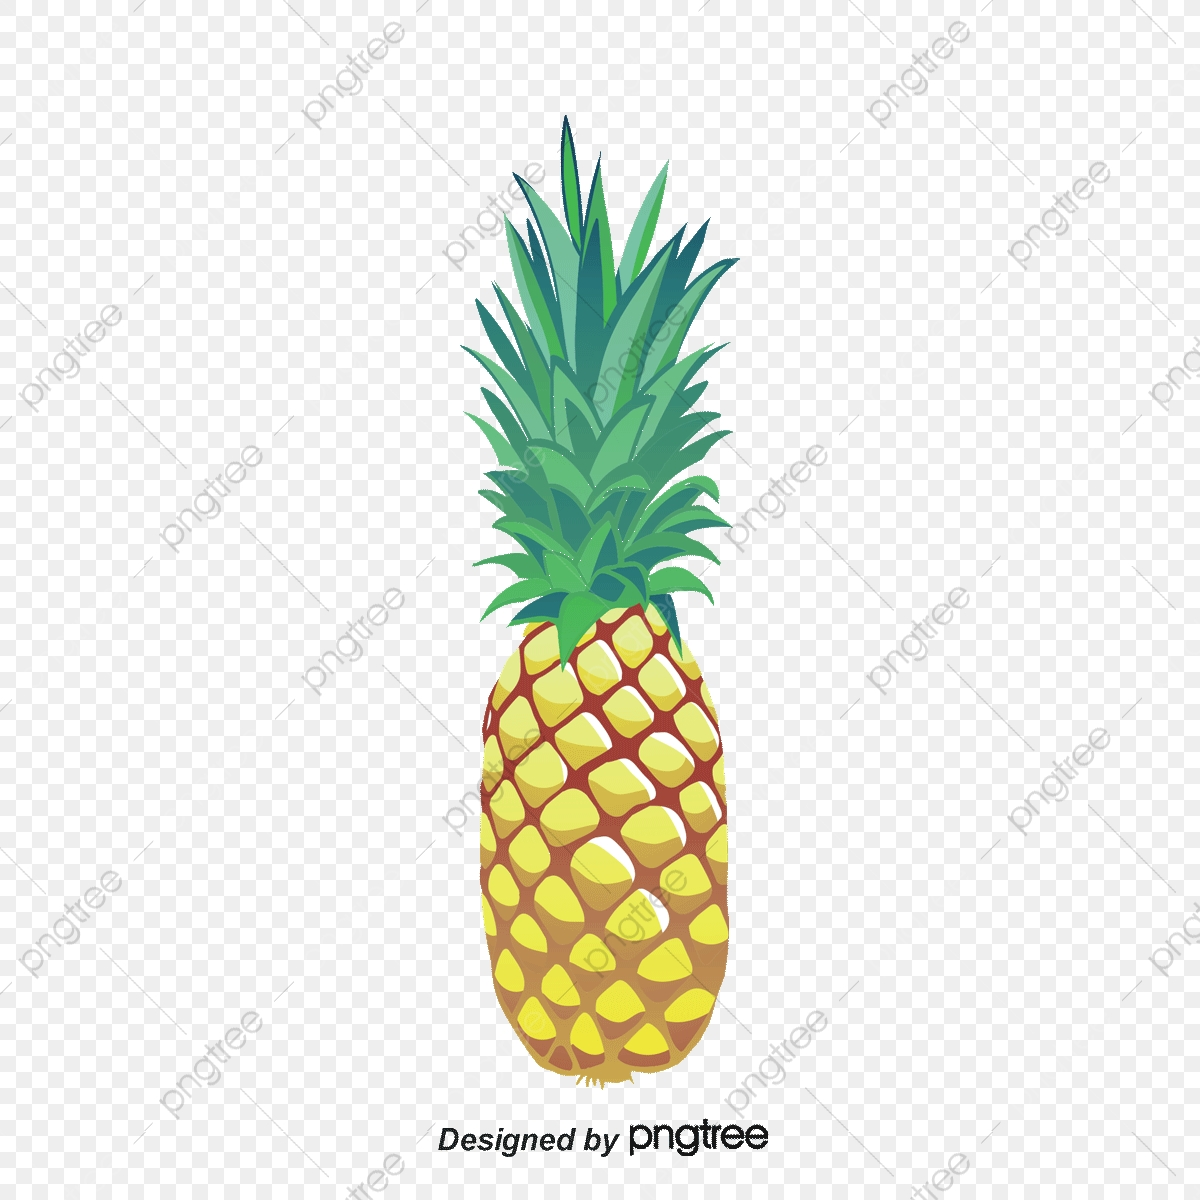 Pineapple clipart oil paint. Fine painting elemental background